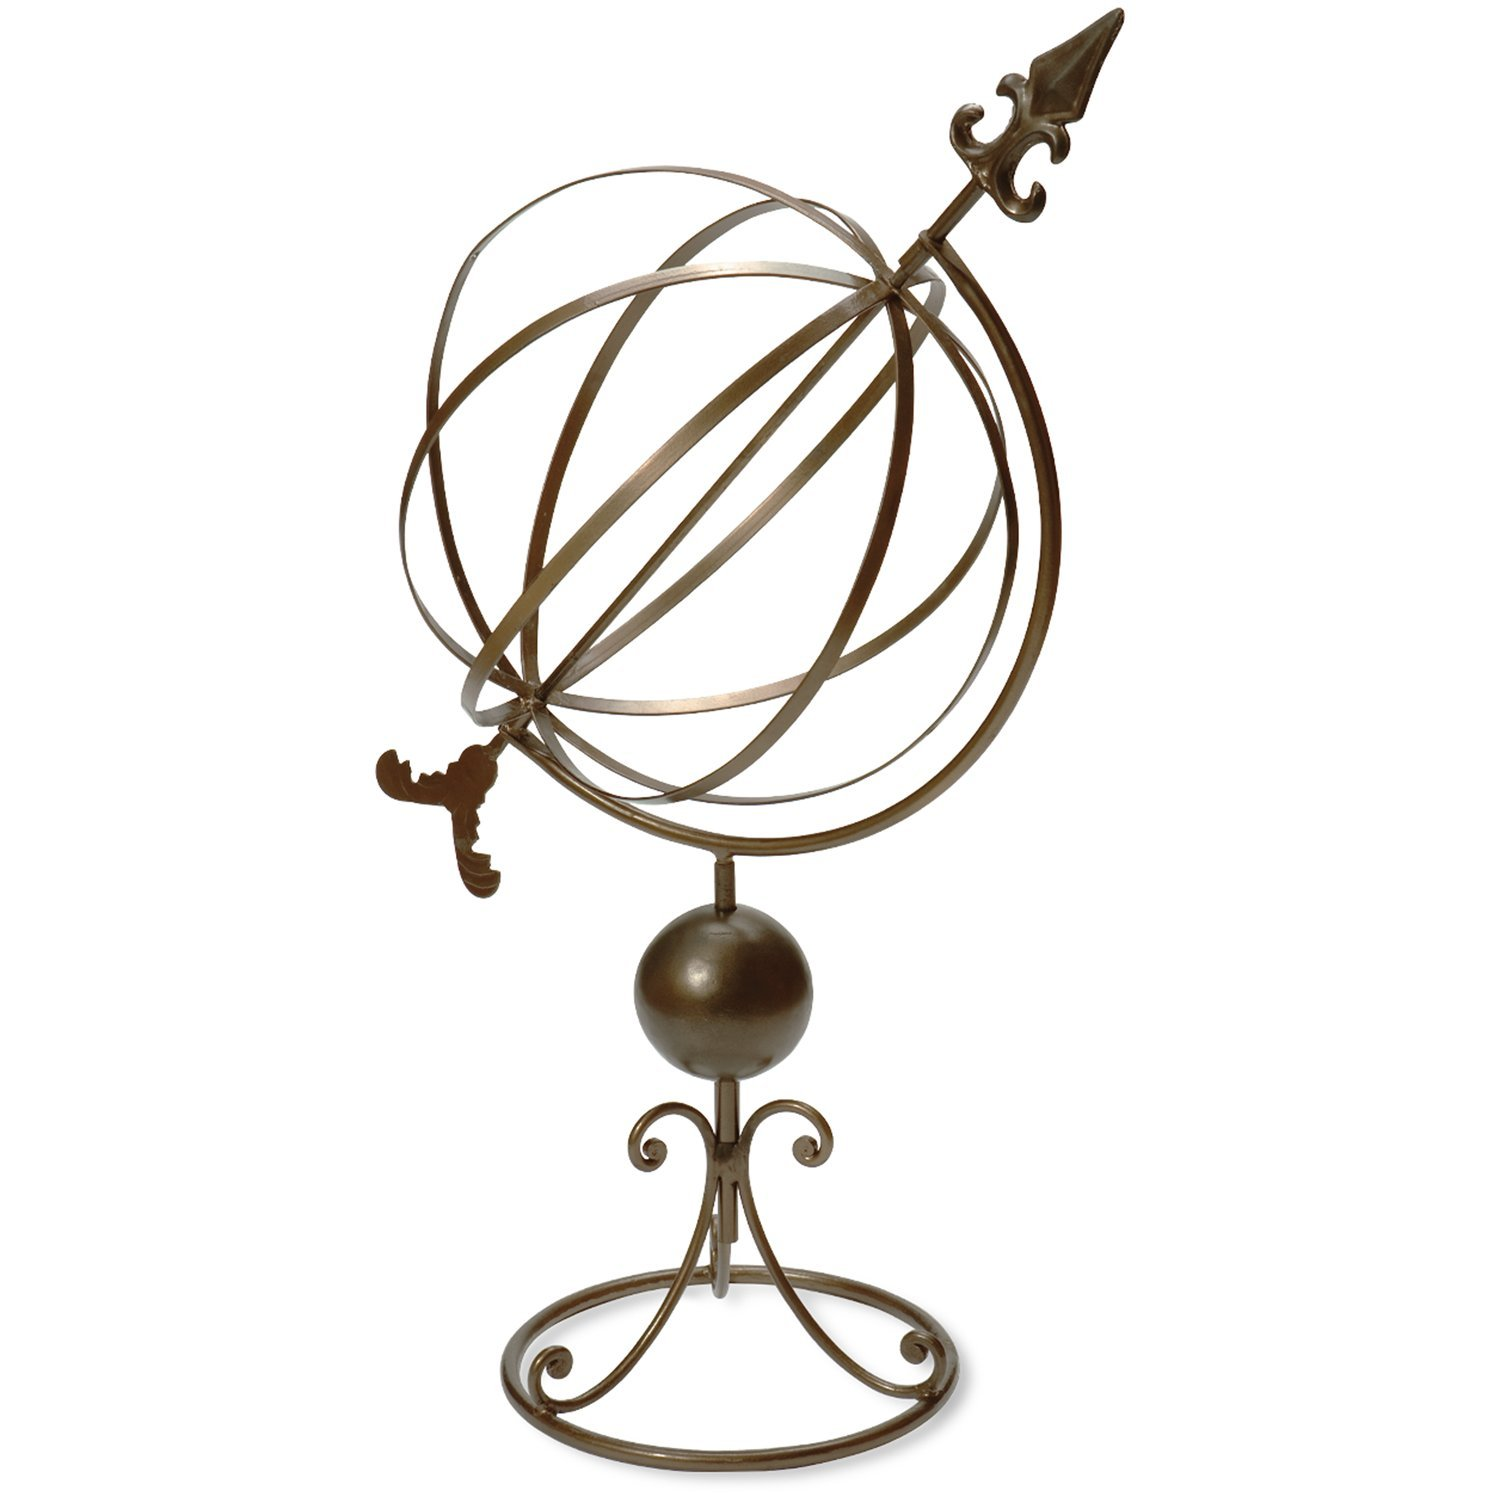 Rome 1320 Wrought Iron Garden Sphere Sundial, Antique Brass Finish, 33 by 14-Inch by Rome